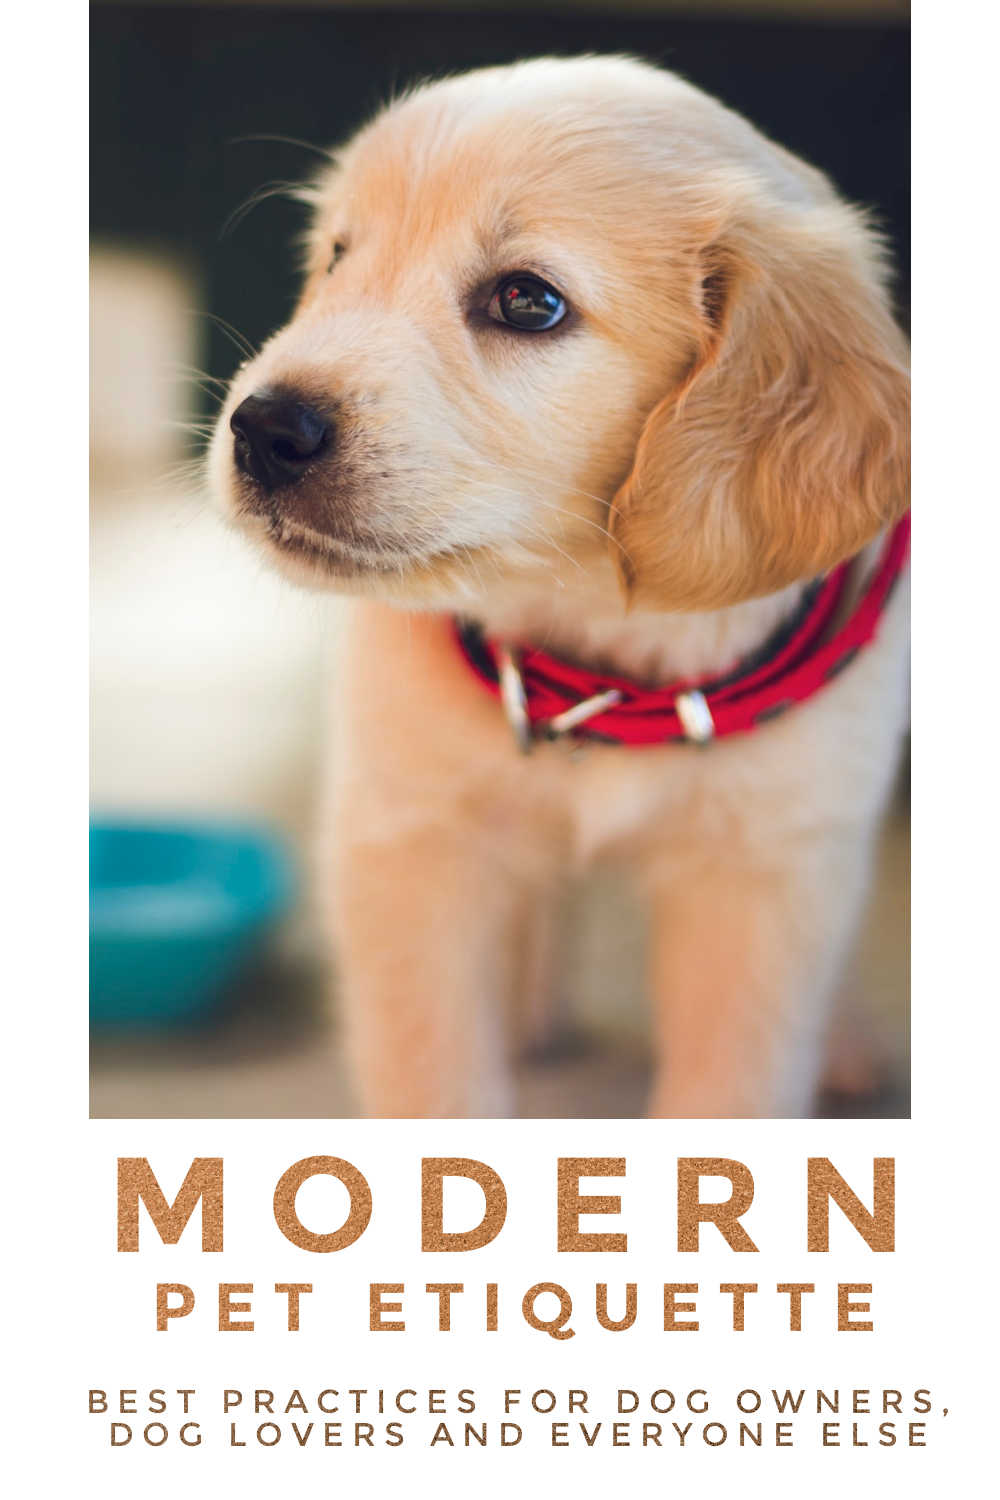 Yellow laborador puppy with red collar and text at the bottom of the image saying Modern Pet Etiquette